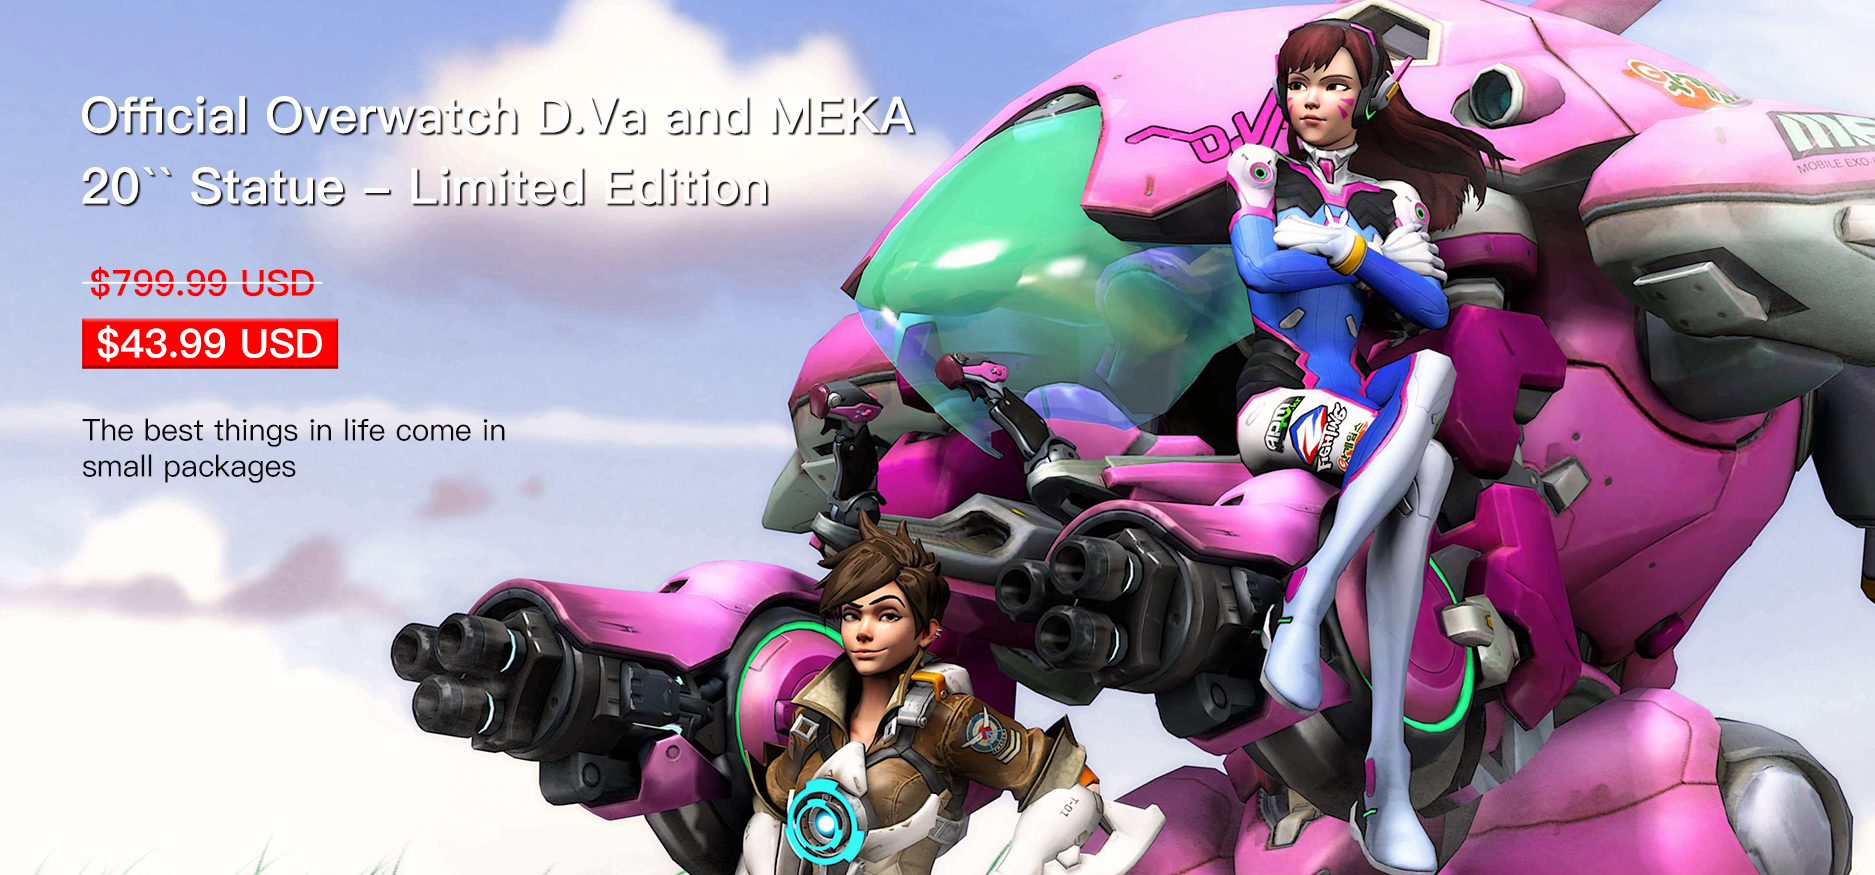 Official Overwatch D.Va and MEKA 20`` Statue - Limited Edition